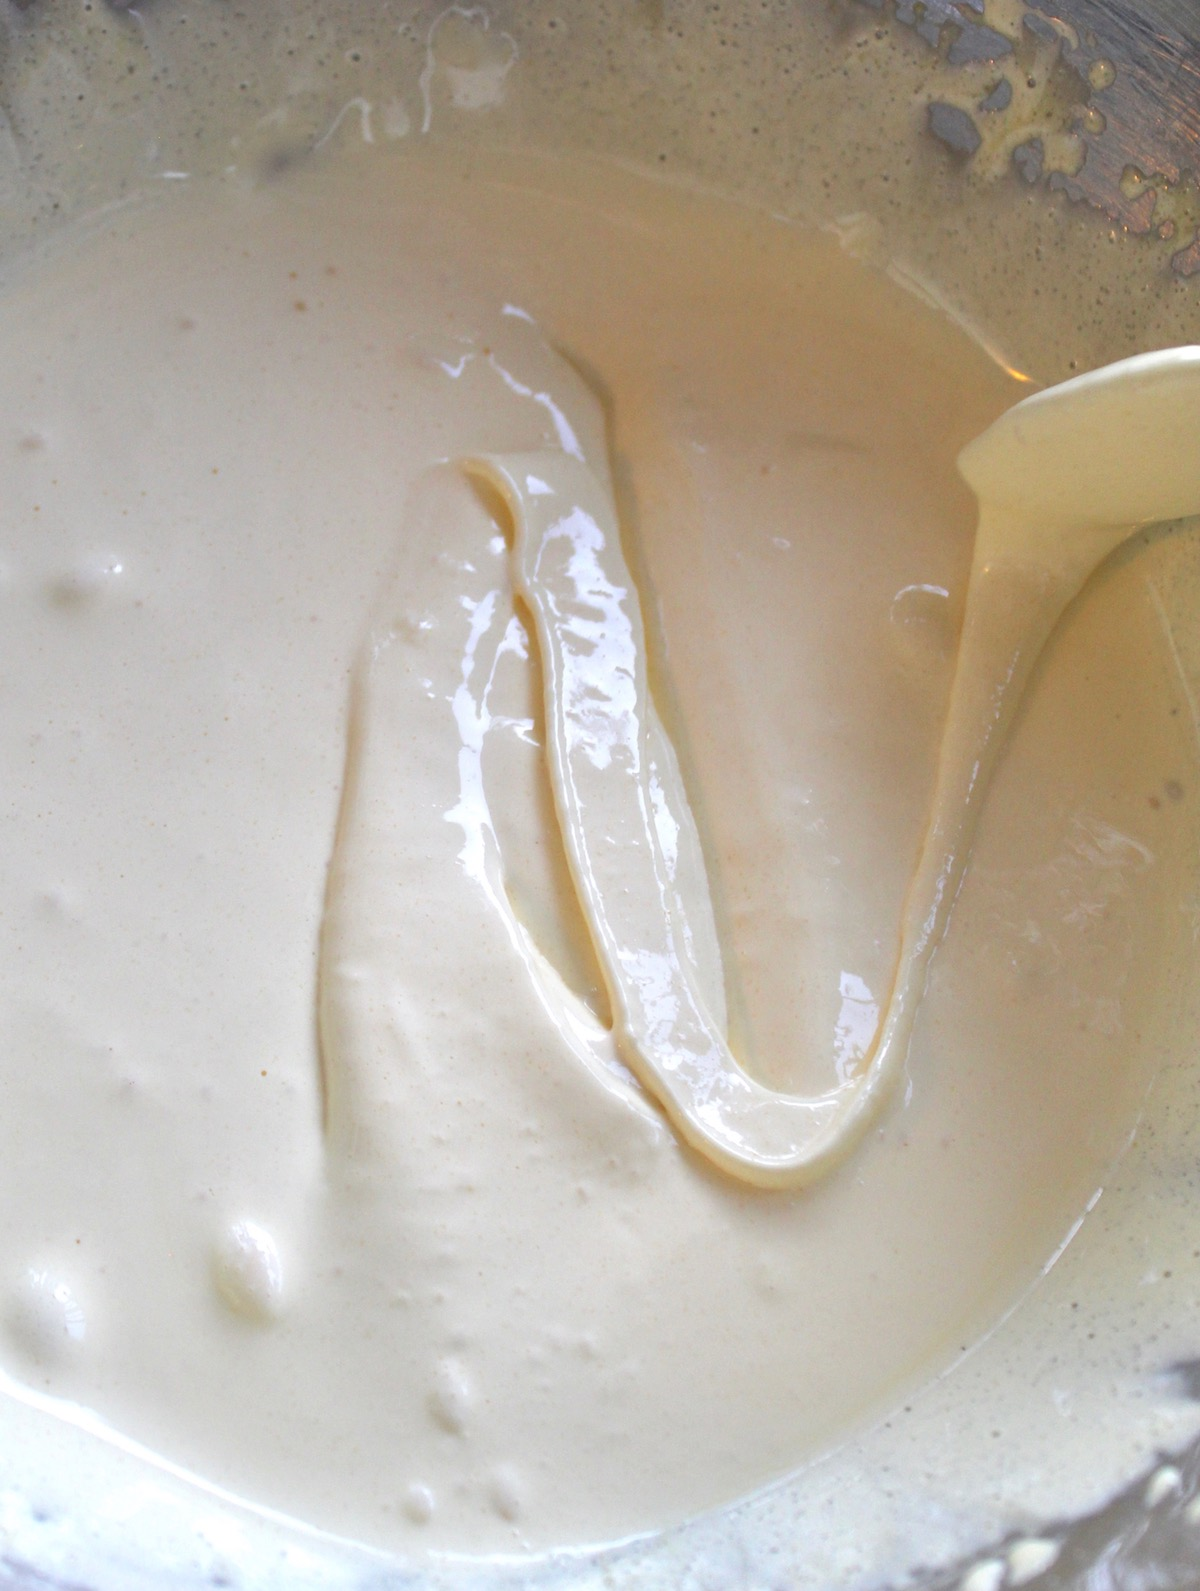 egg-sugar mixture with a drizzle of it on top